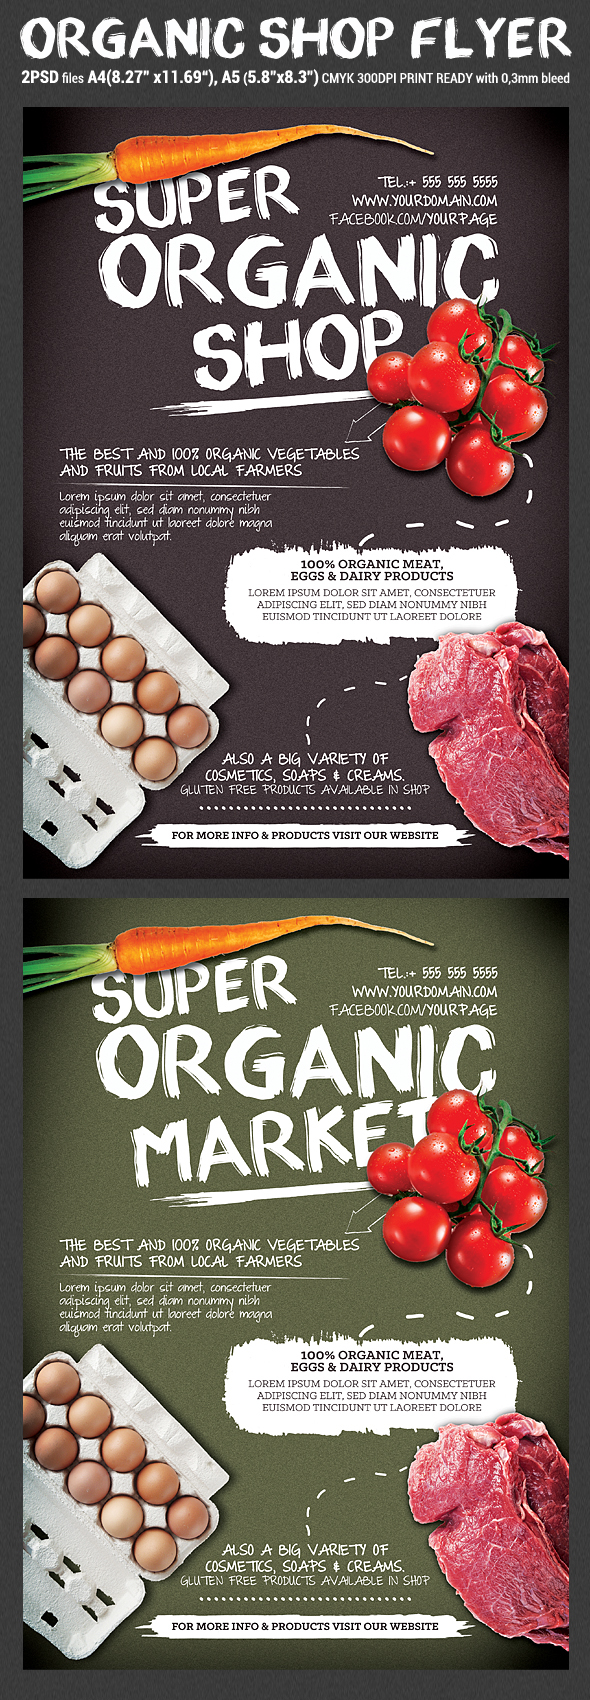 Organic Shop Promotion Flyer Template on Behance